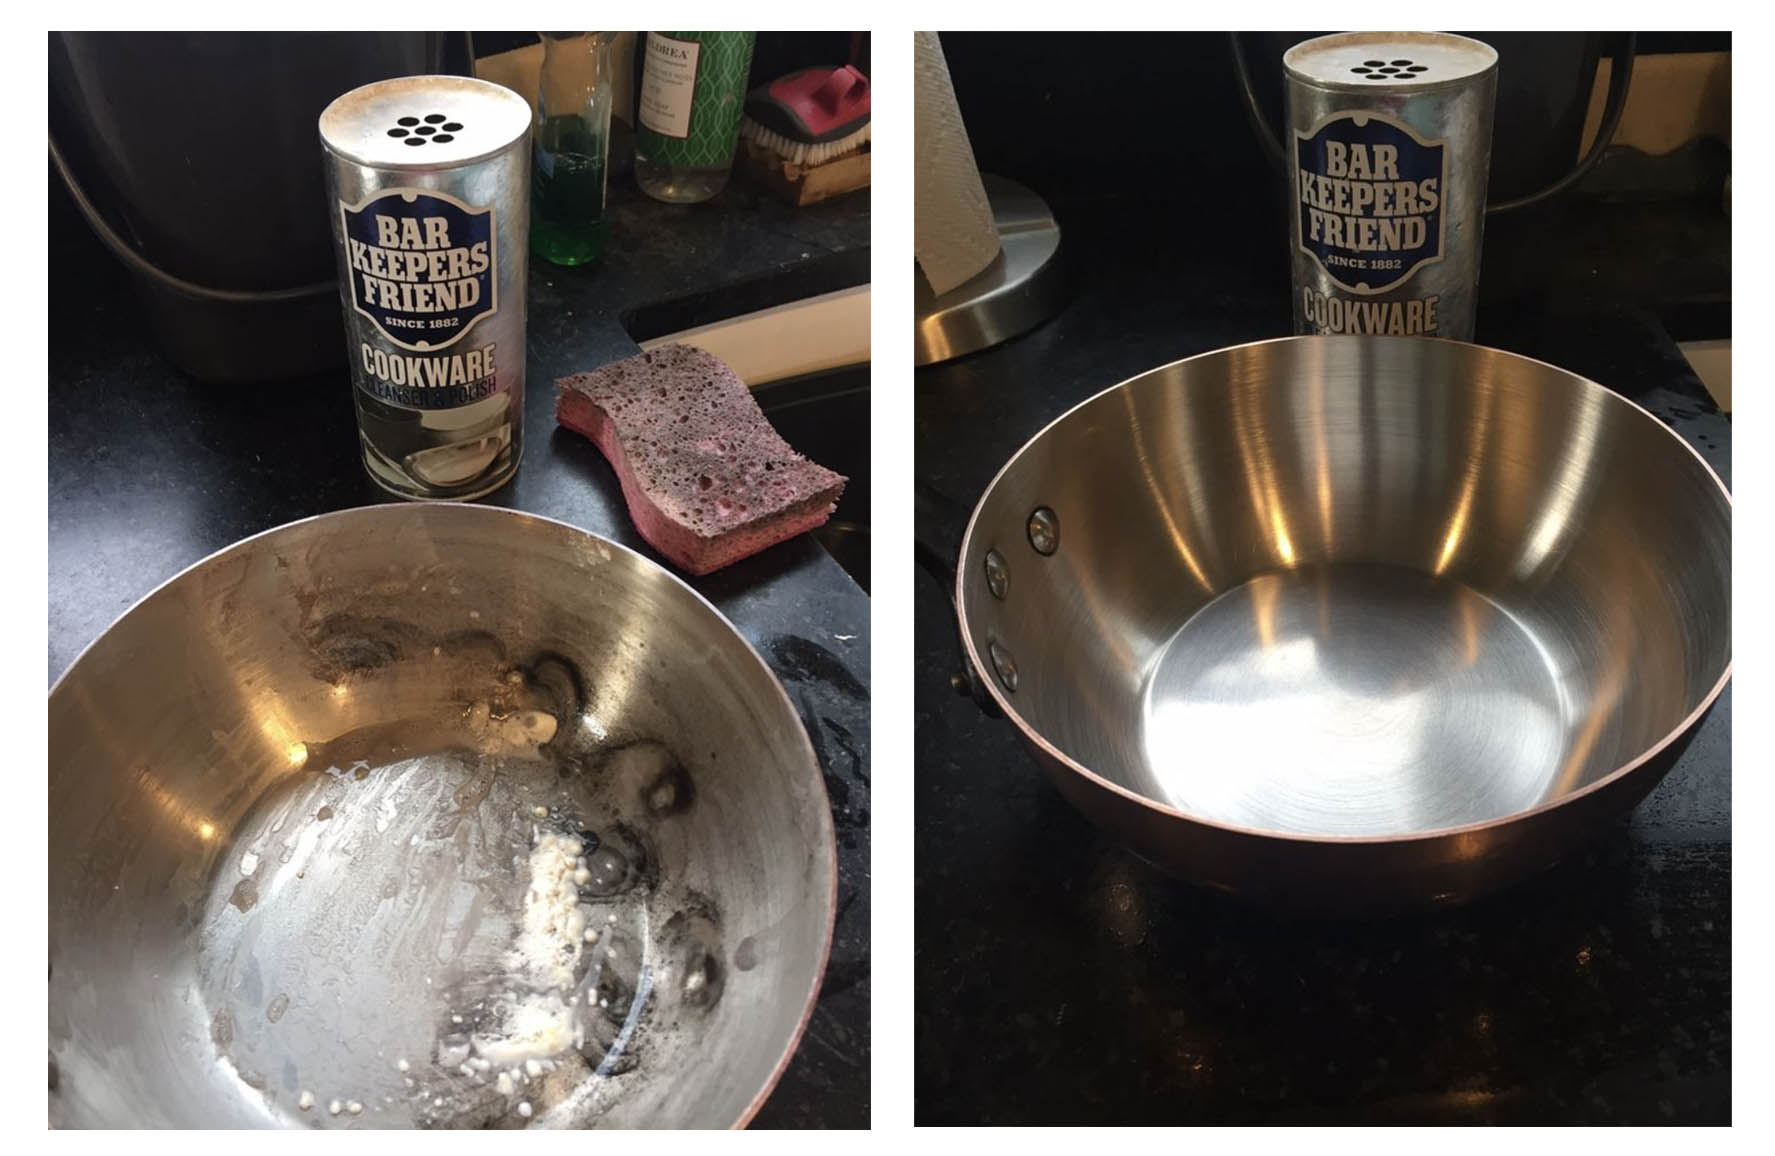 how to clean stainless steel pans - stainless steel cookware - image 2